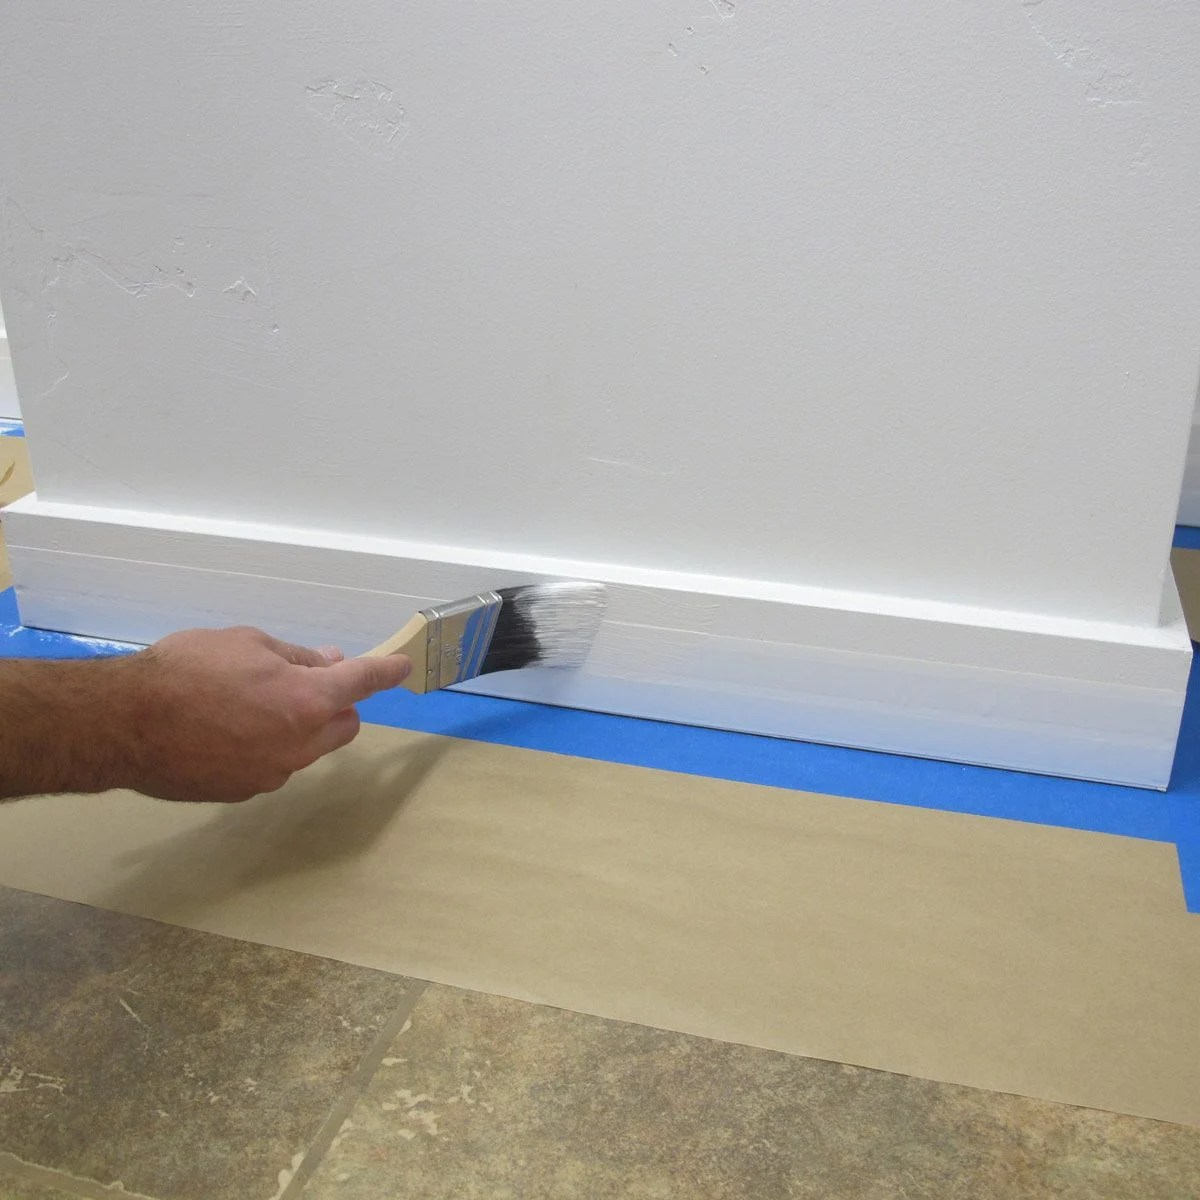 Floor Wire Molding 5 Brilliant Ways To Hide Wires In A Room Without Going Into The